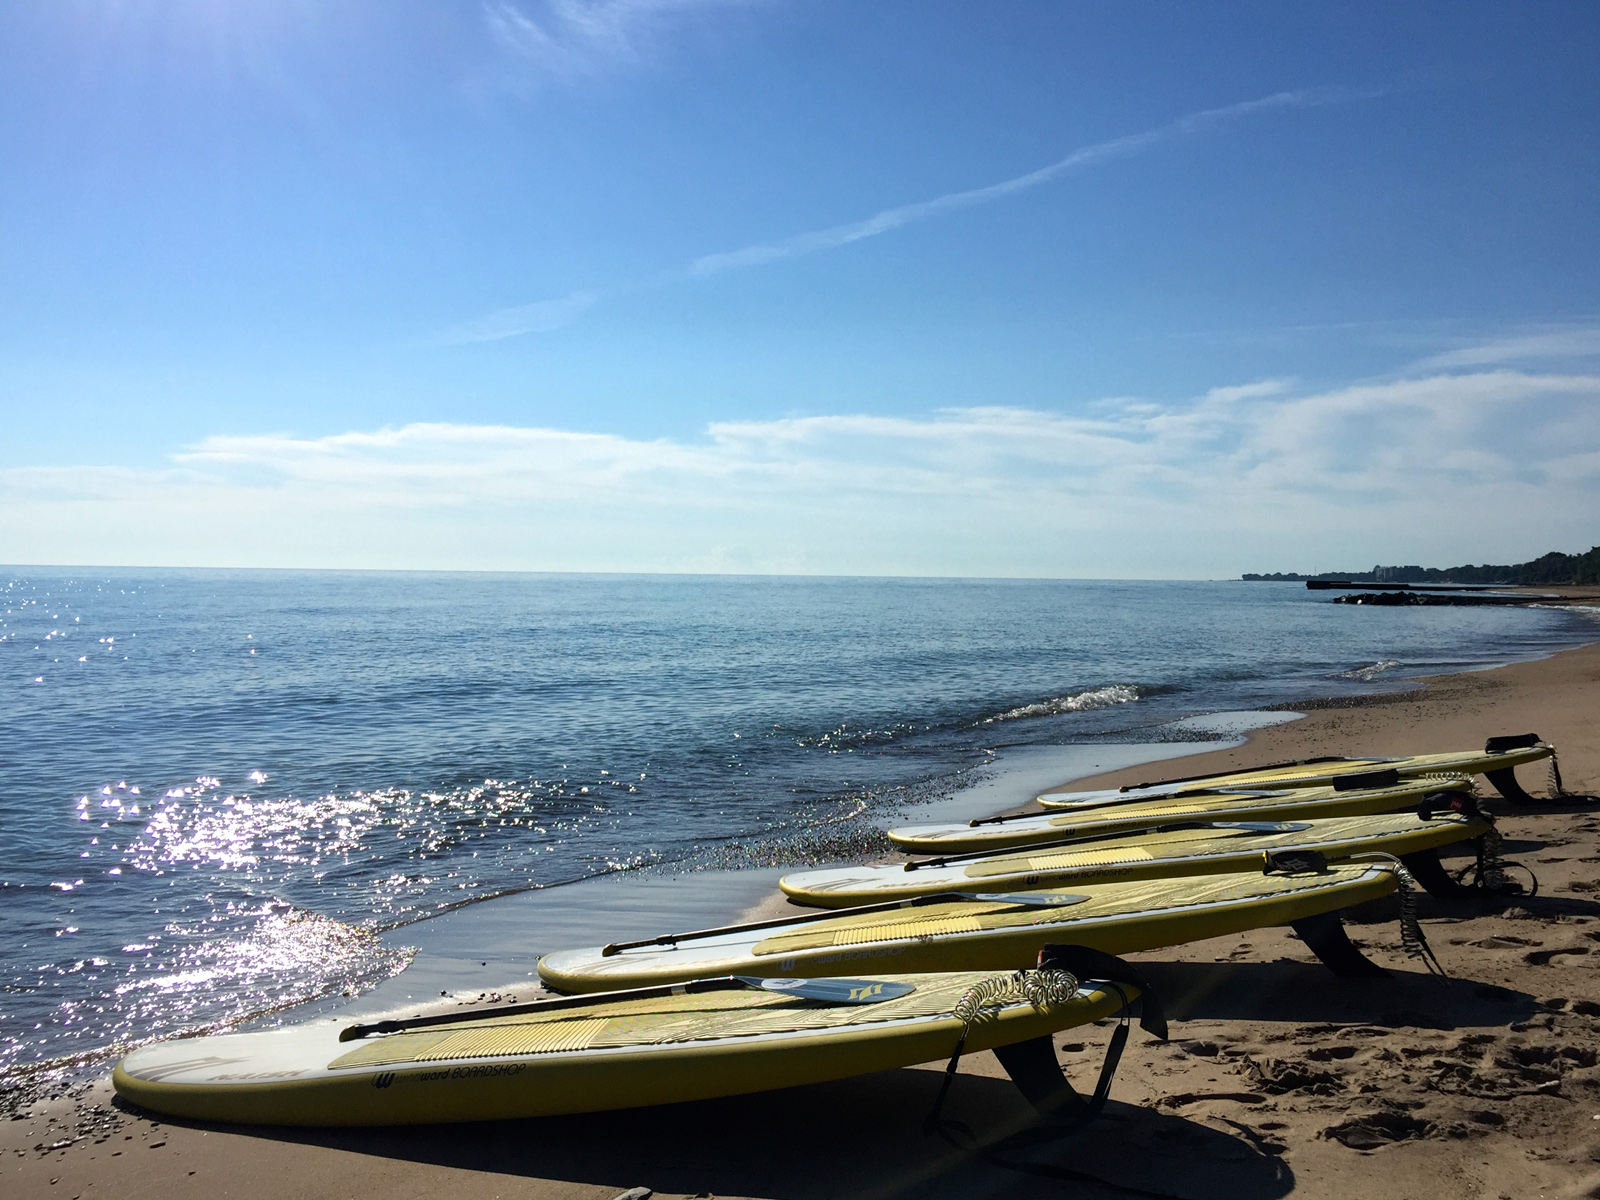 SUP Yoga 9am Sundays- LLoyd Beach on Tower Road